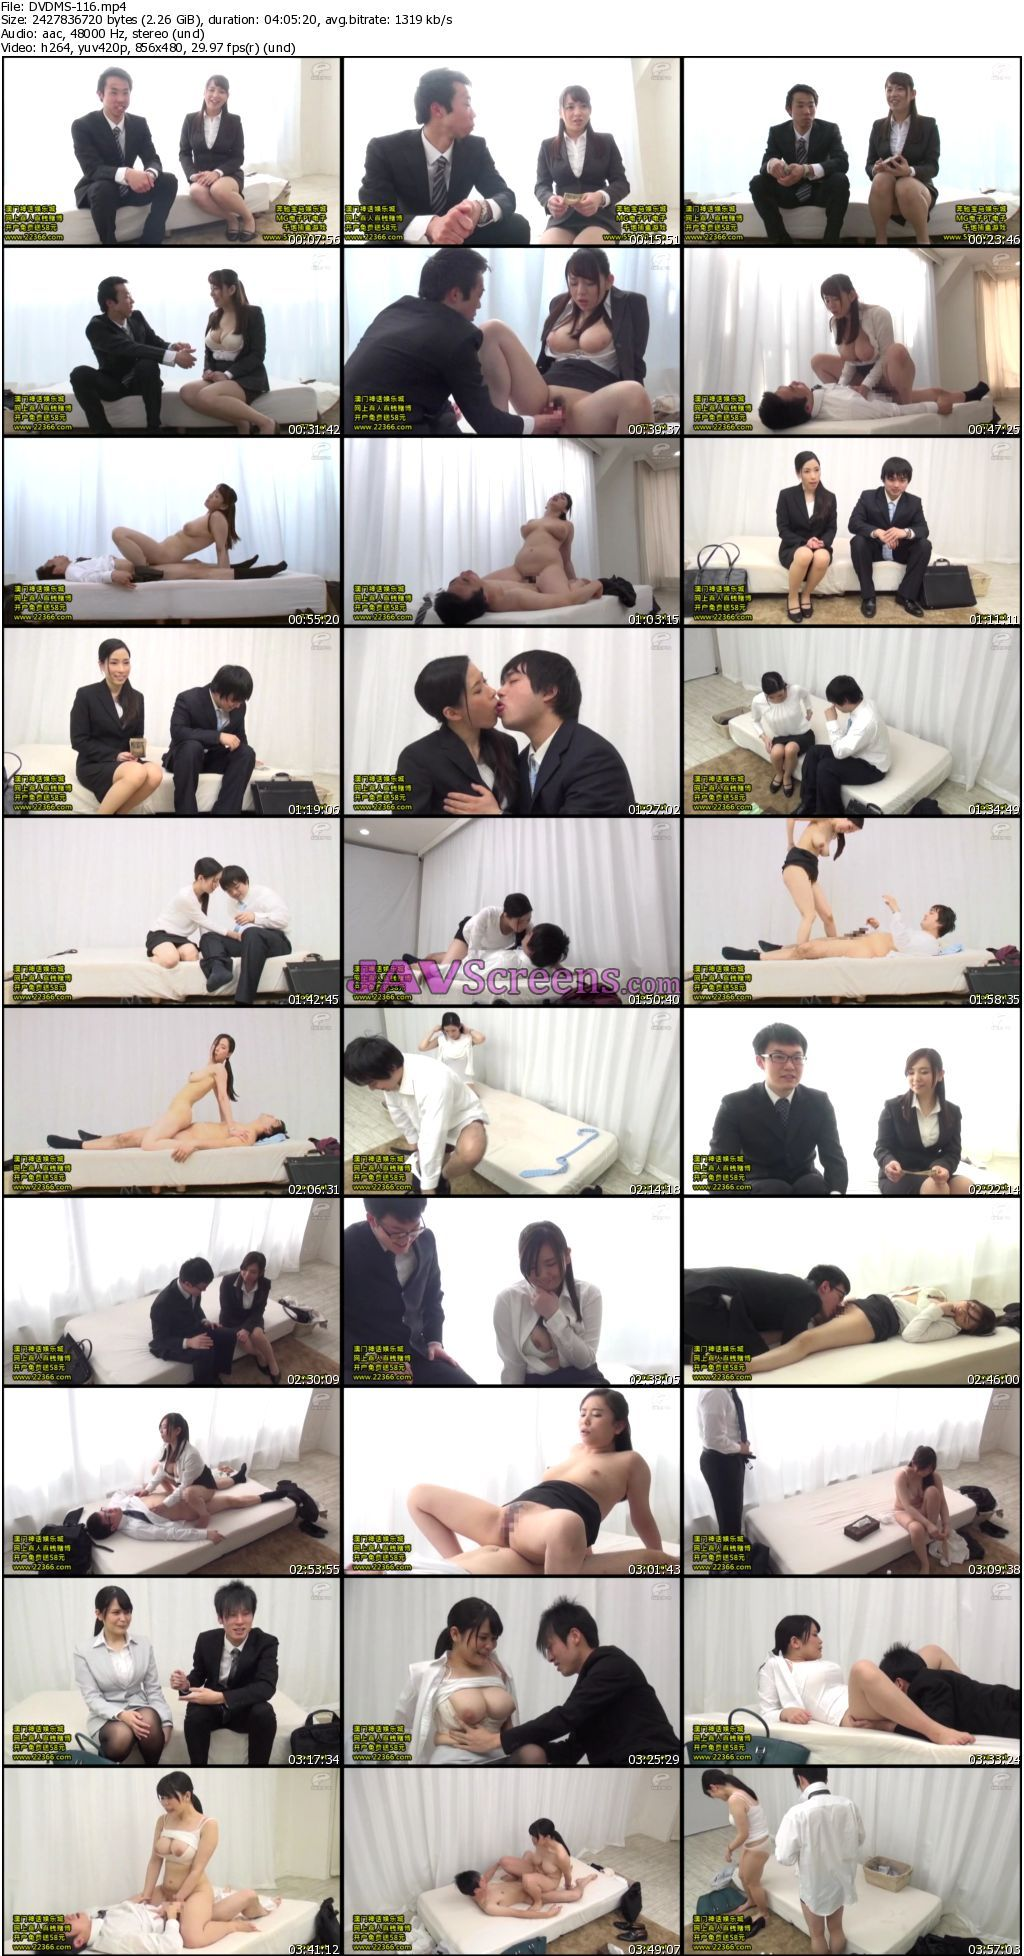 DVDMS-116.jpg - JAV Screenshot